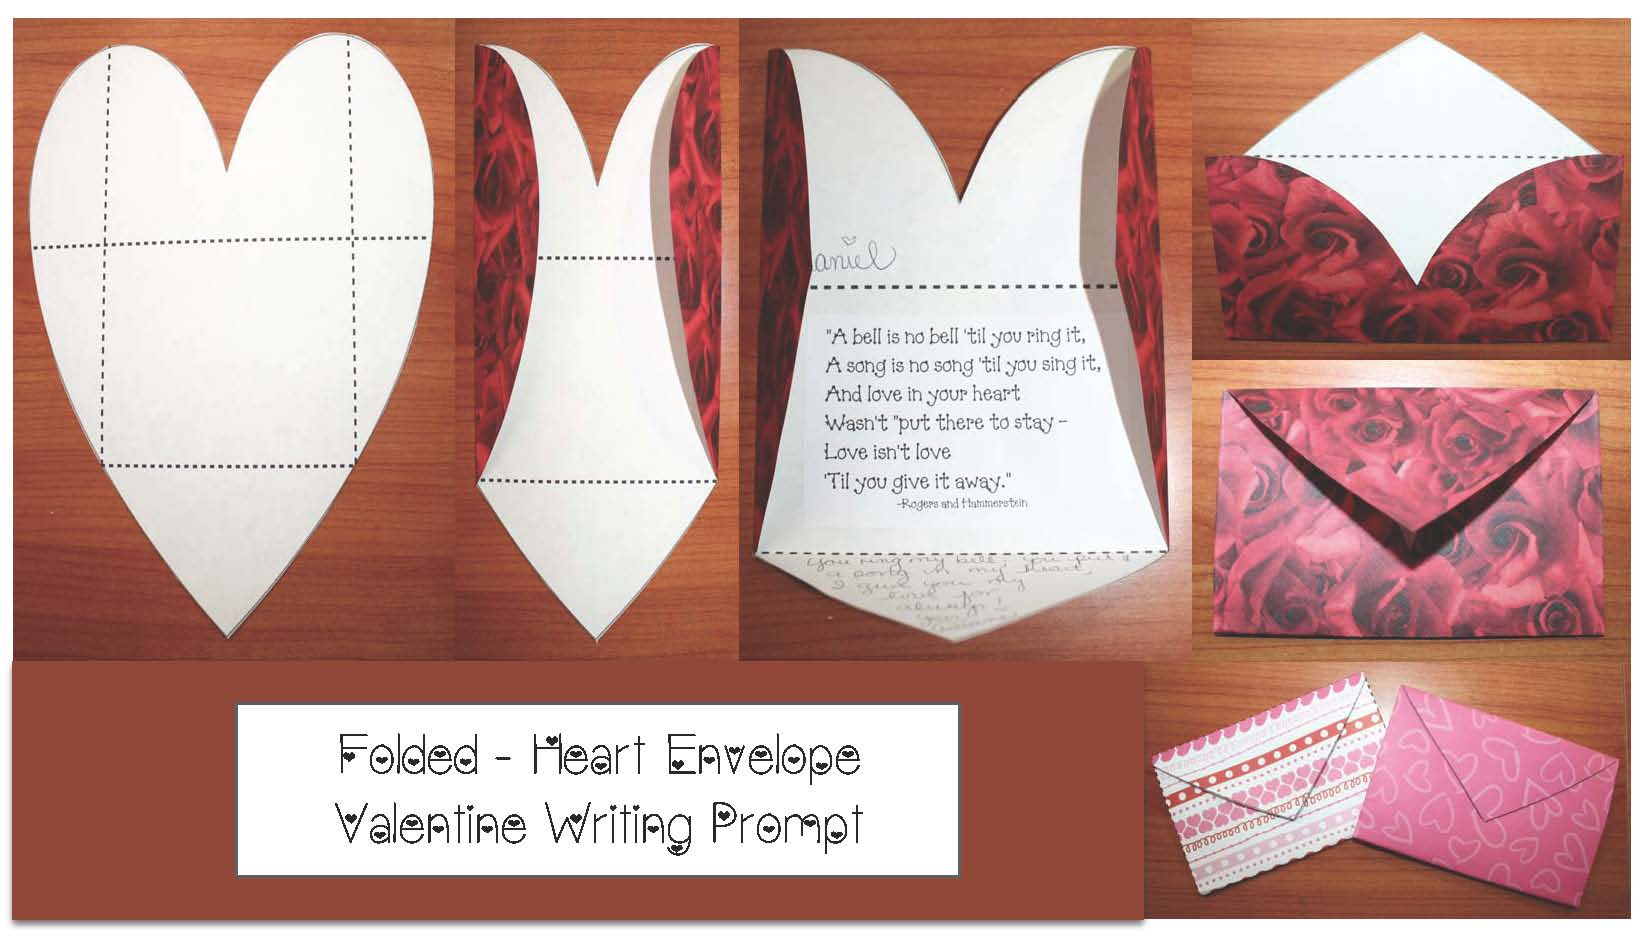 homemade valentines, mustache valentines, Christian valentines, valentines day activities, valentines day crafts, valentines for kids, vintage valentines, valentine crafts, valentine writing promtps, writing prompts for February,